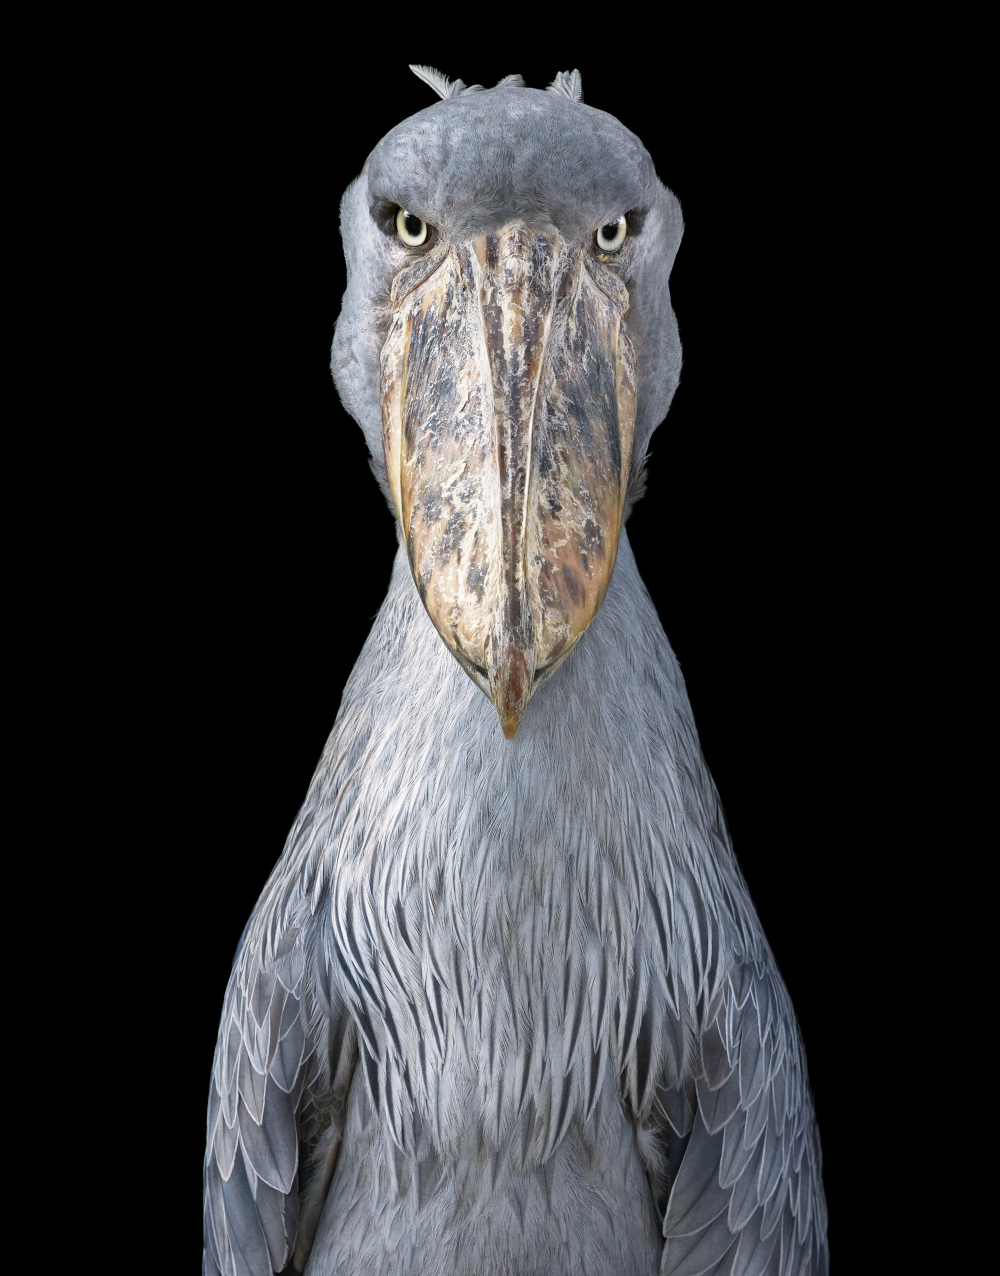 Photographer Tim Flach Highlights Unusual and Endangered